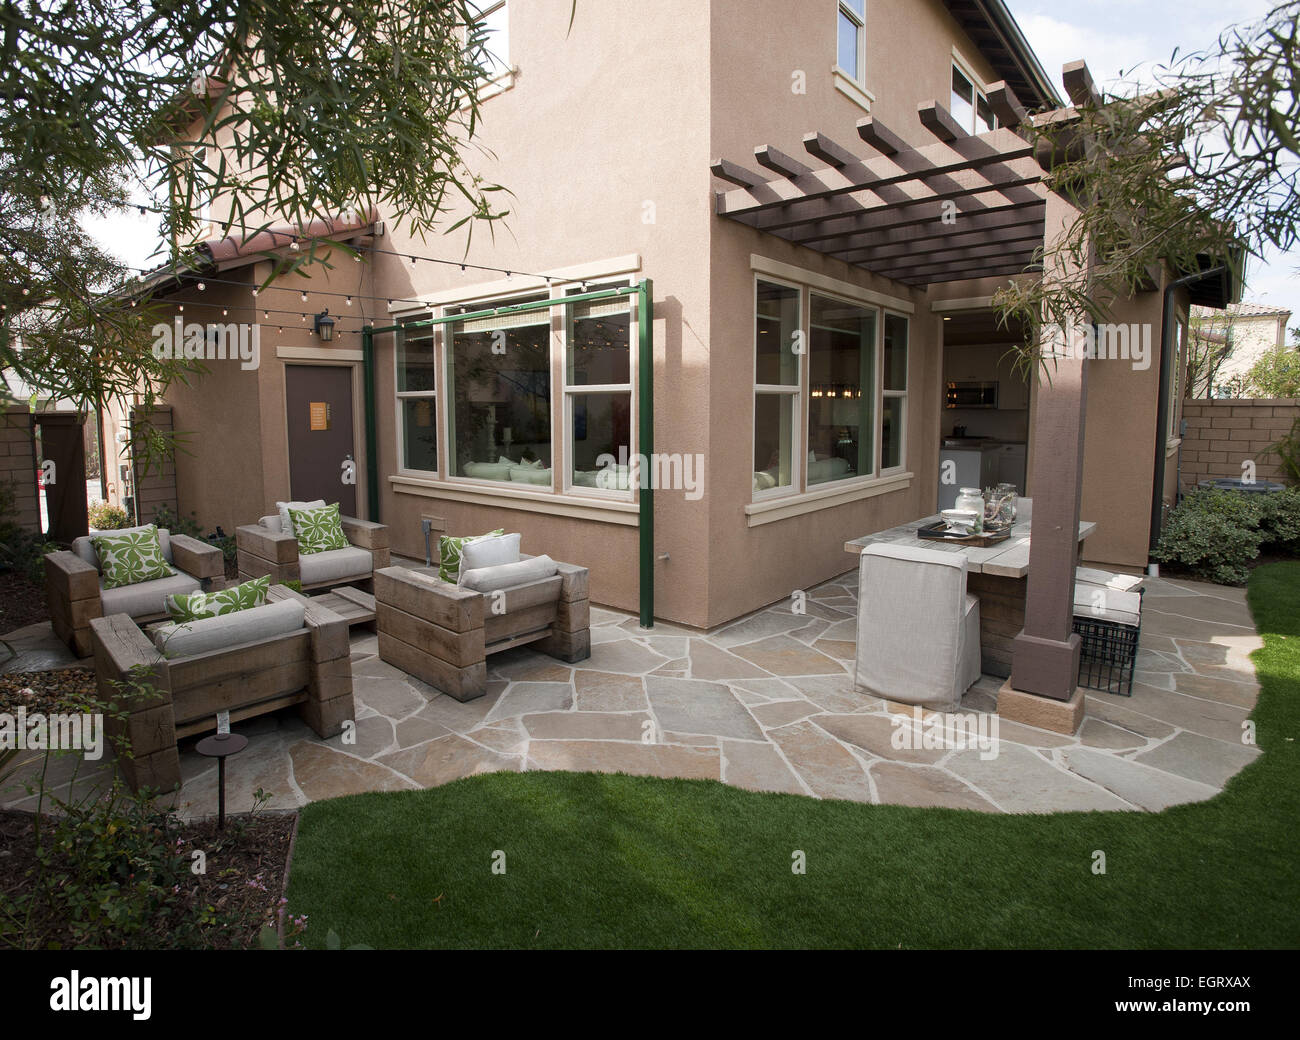 California Model Home Open And On Display For Home Shoppers To View. Model  Home Rear Patio Area With Seating And Outdoor